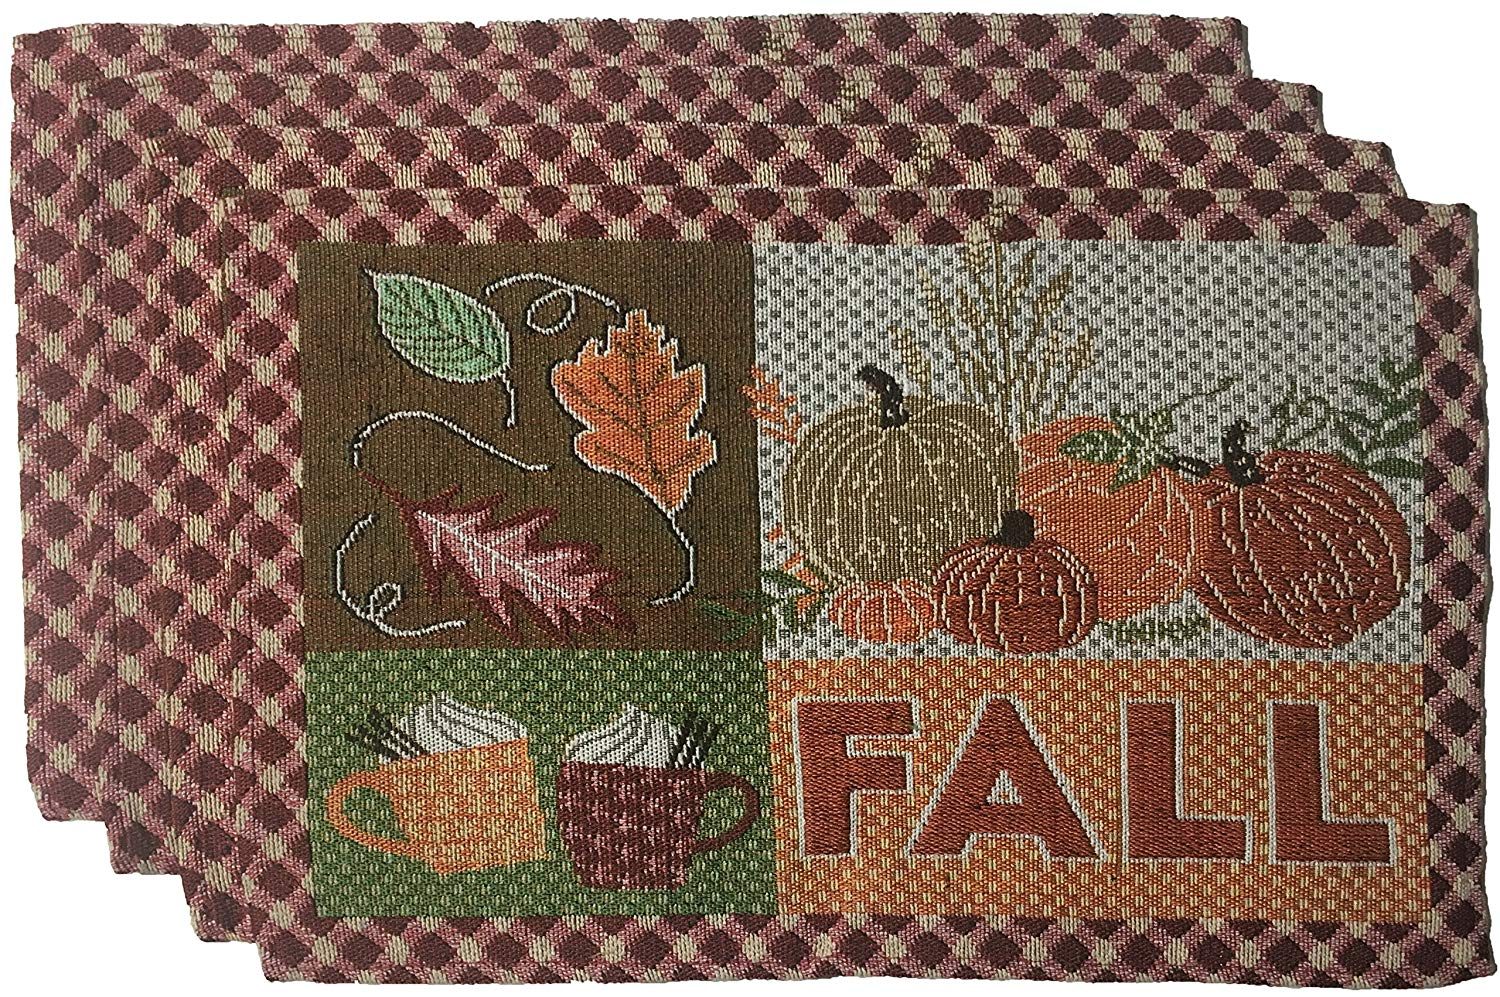 """Nidico Set of 4, Printed Decorative Fall/Halloween/Thanksgiving Collection Tapestry Placemats Size : 13"""" x 19"""". (Design D)"""